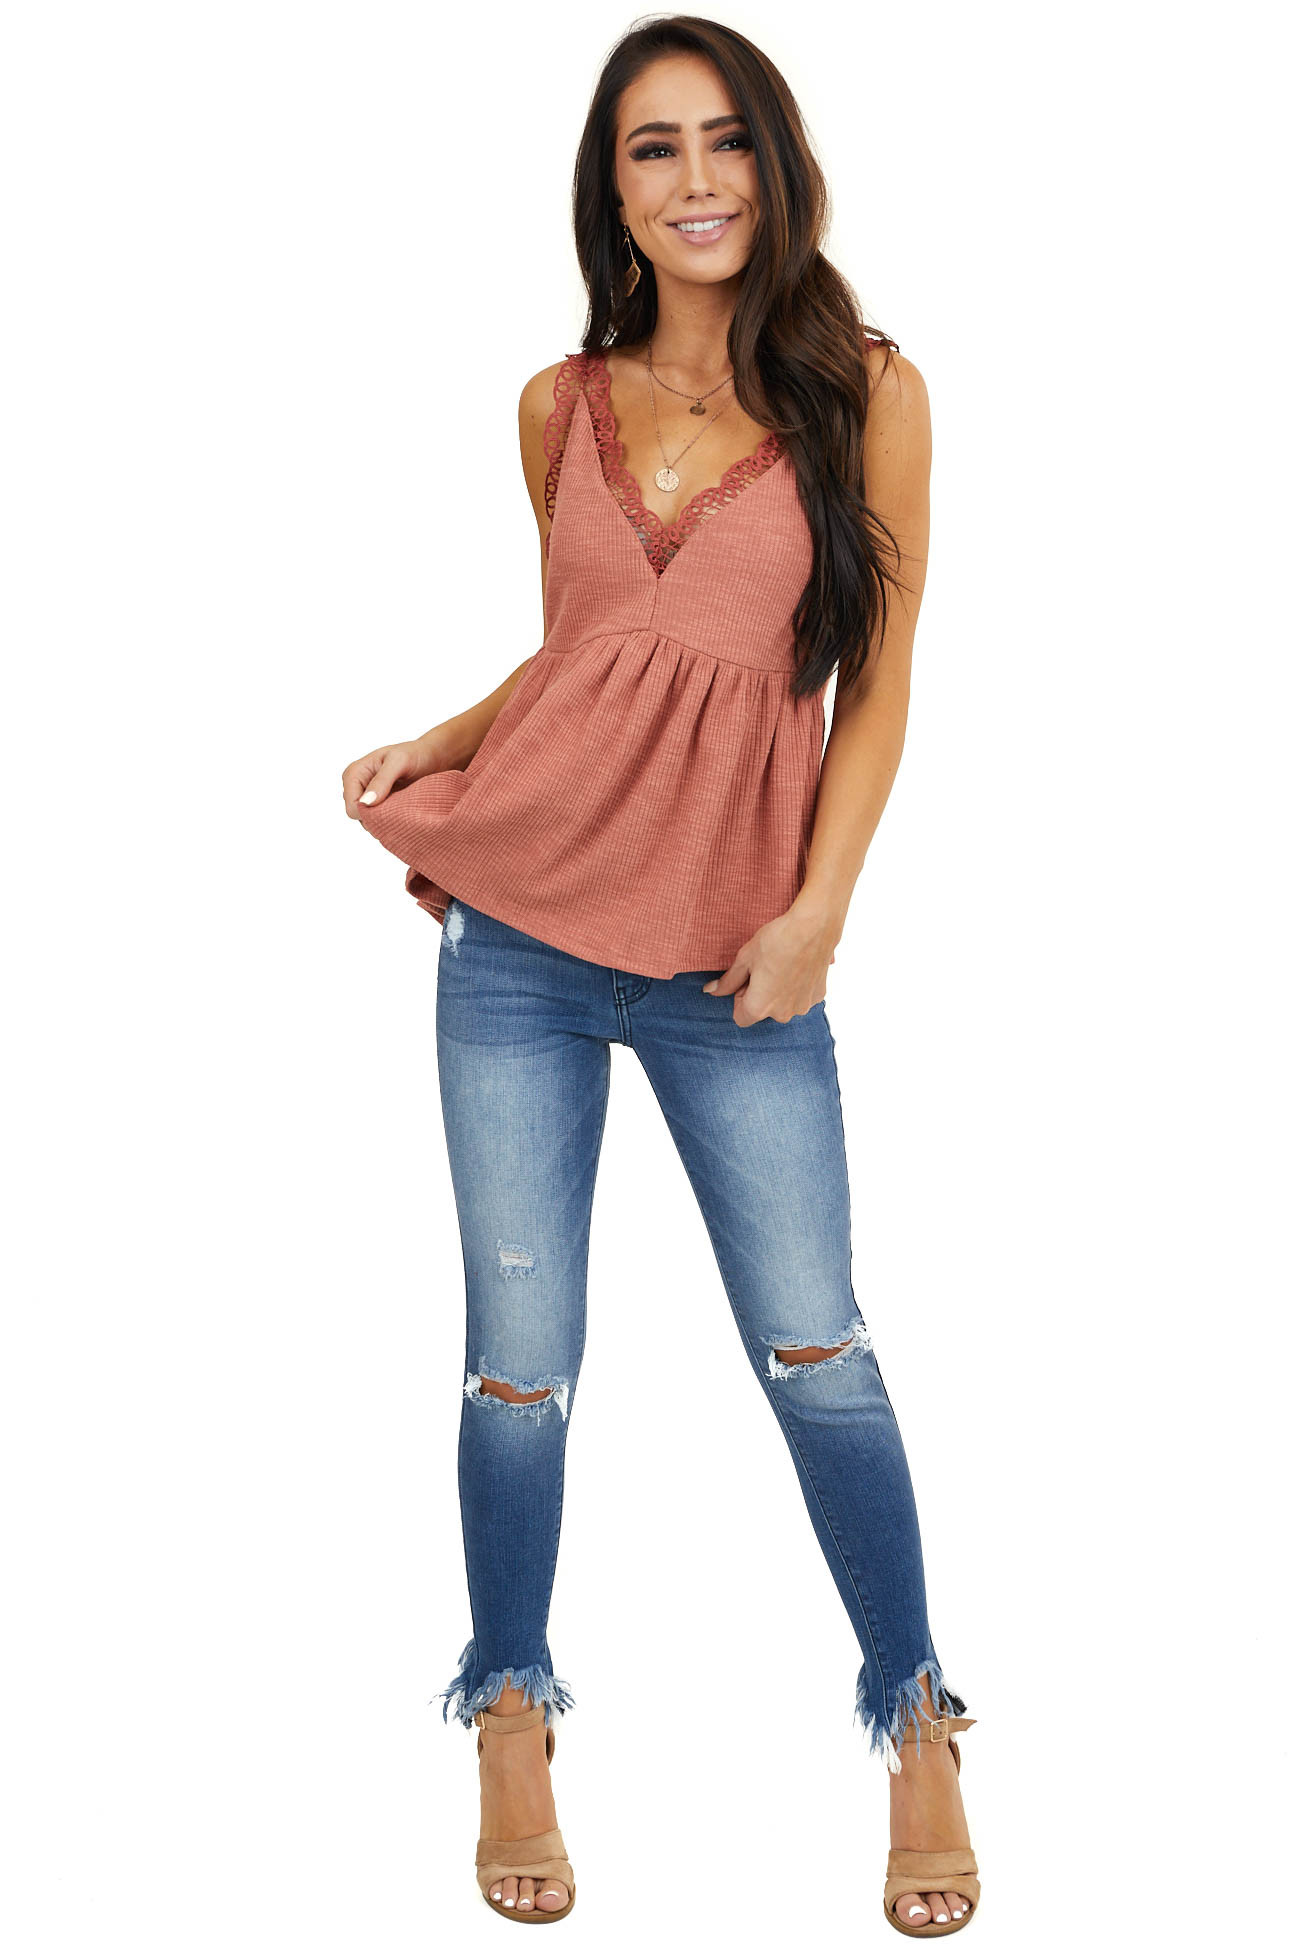 Dusty Salmon V Neck Tank Top with Crochet Lace Trim